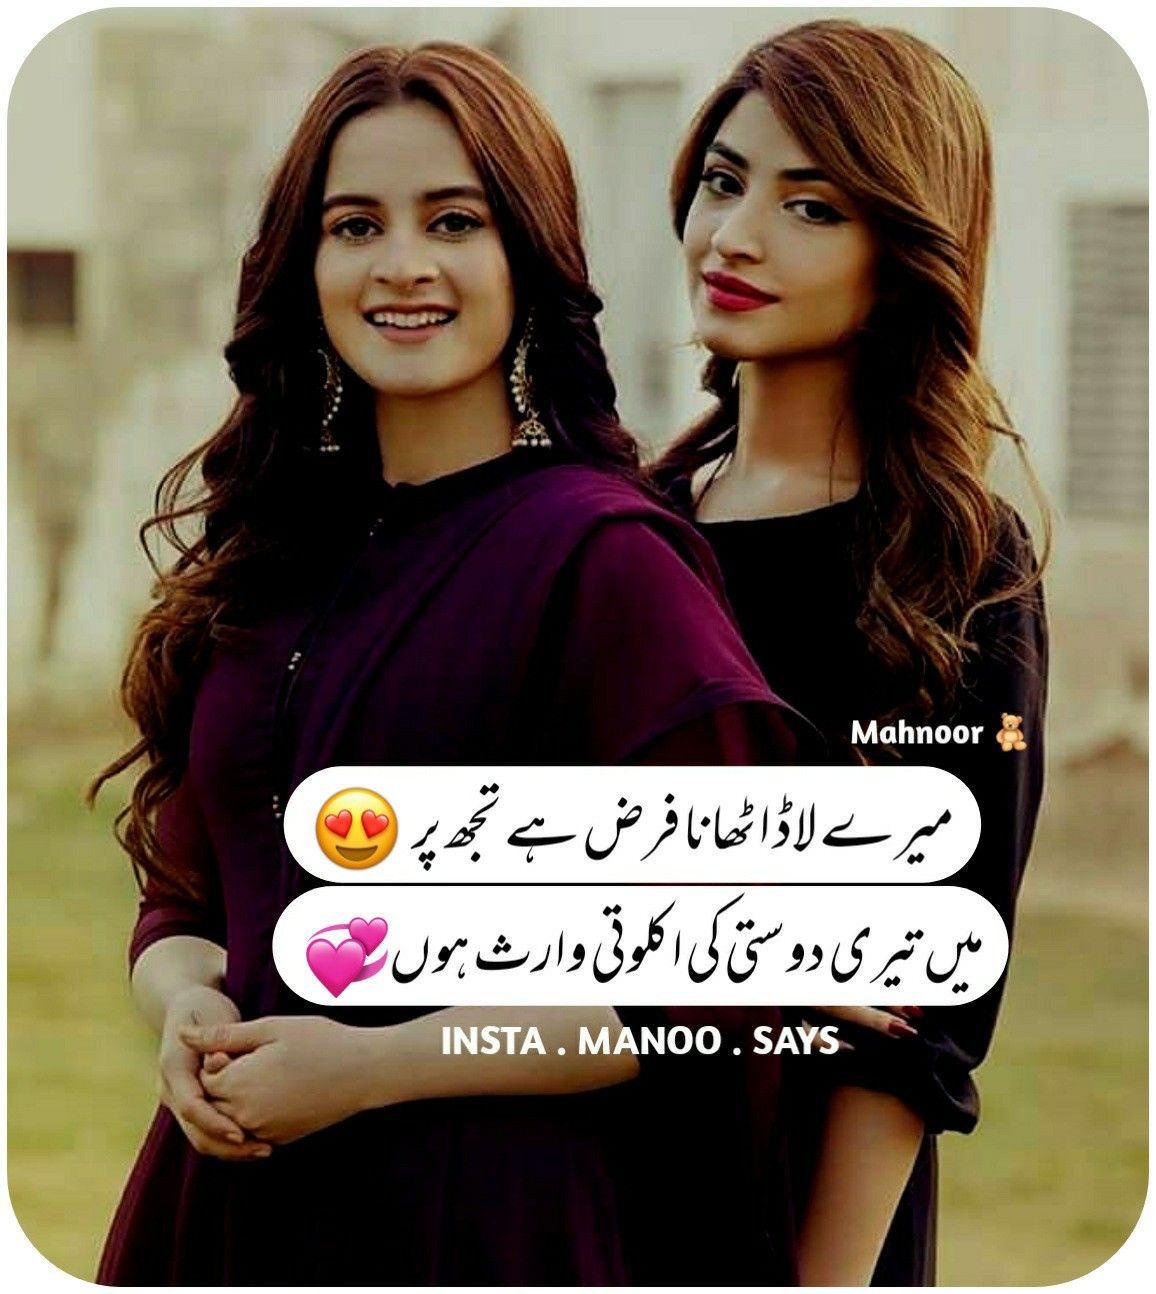 Pin By Shehry Mirza On Khati Methi Baaty Friends Forever Quotes Funny Girl Quotes Besties Quotes